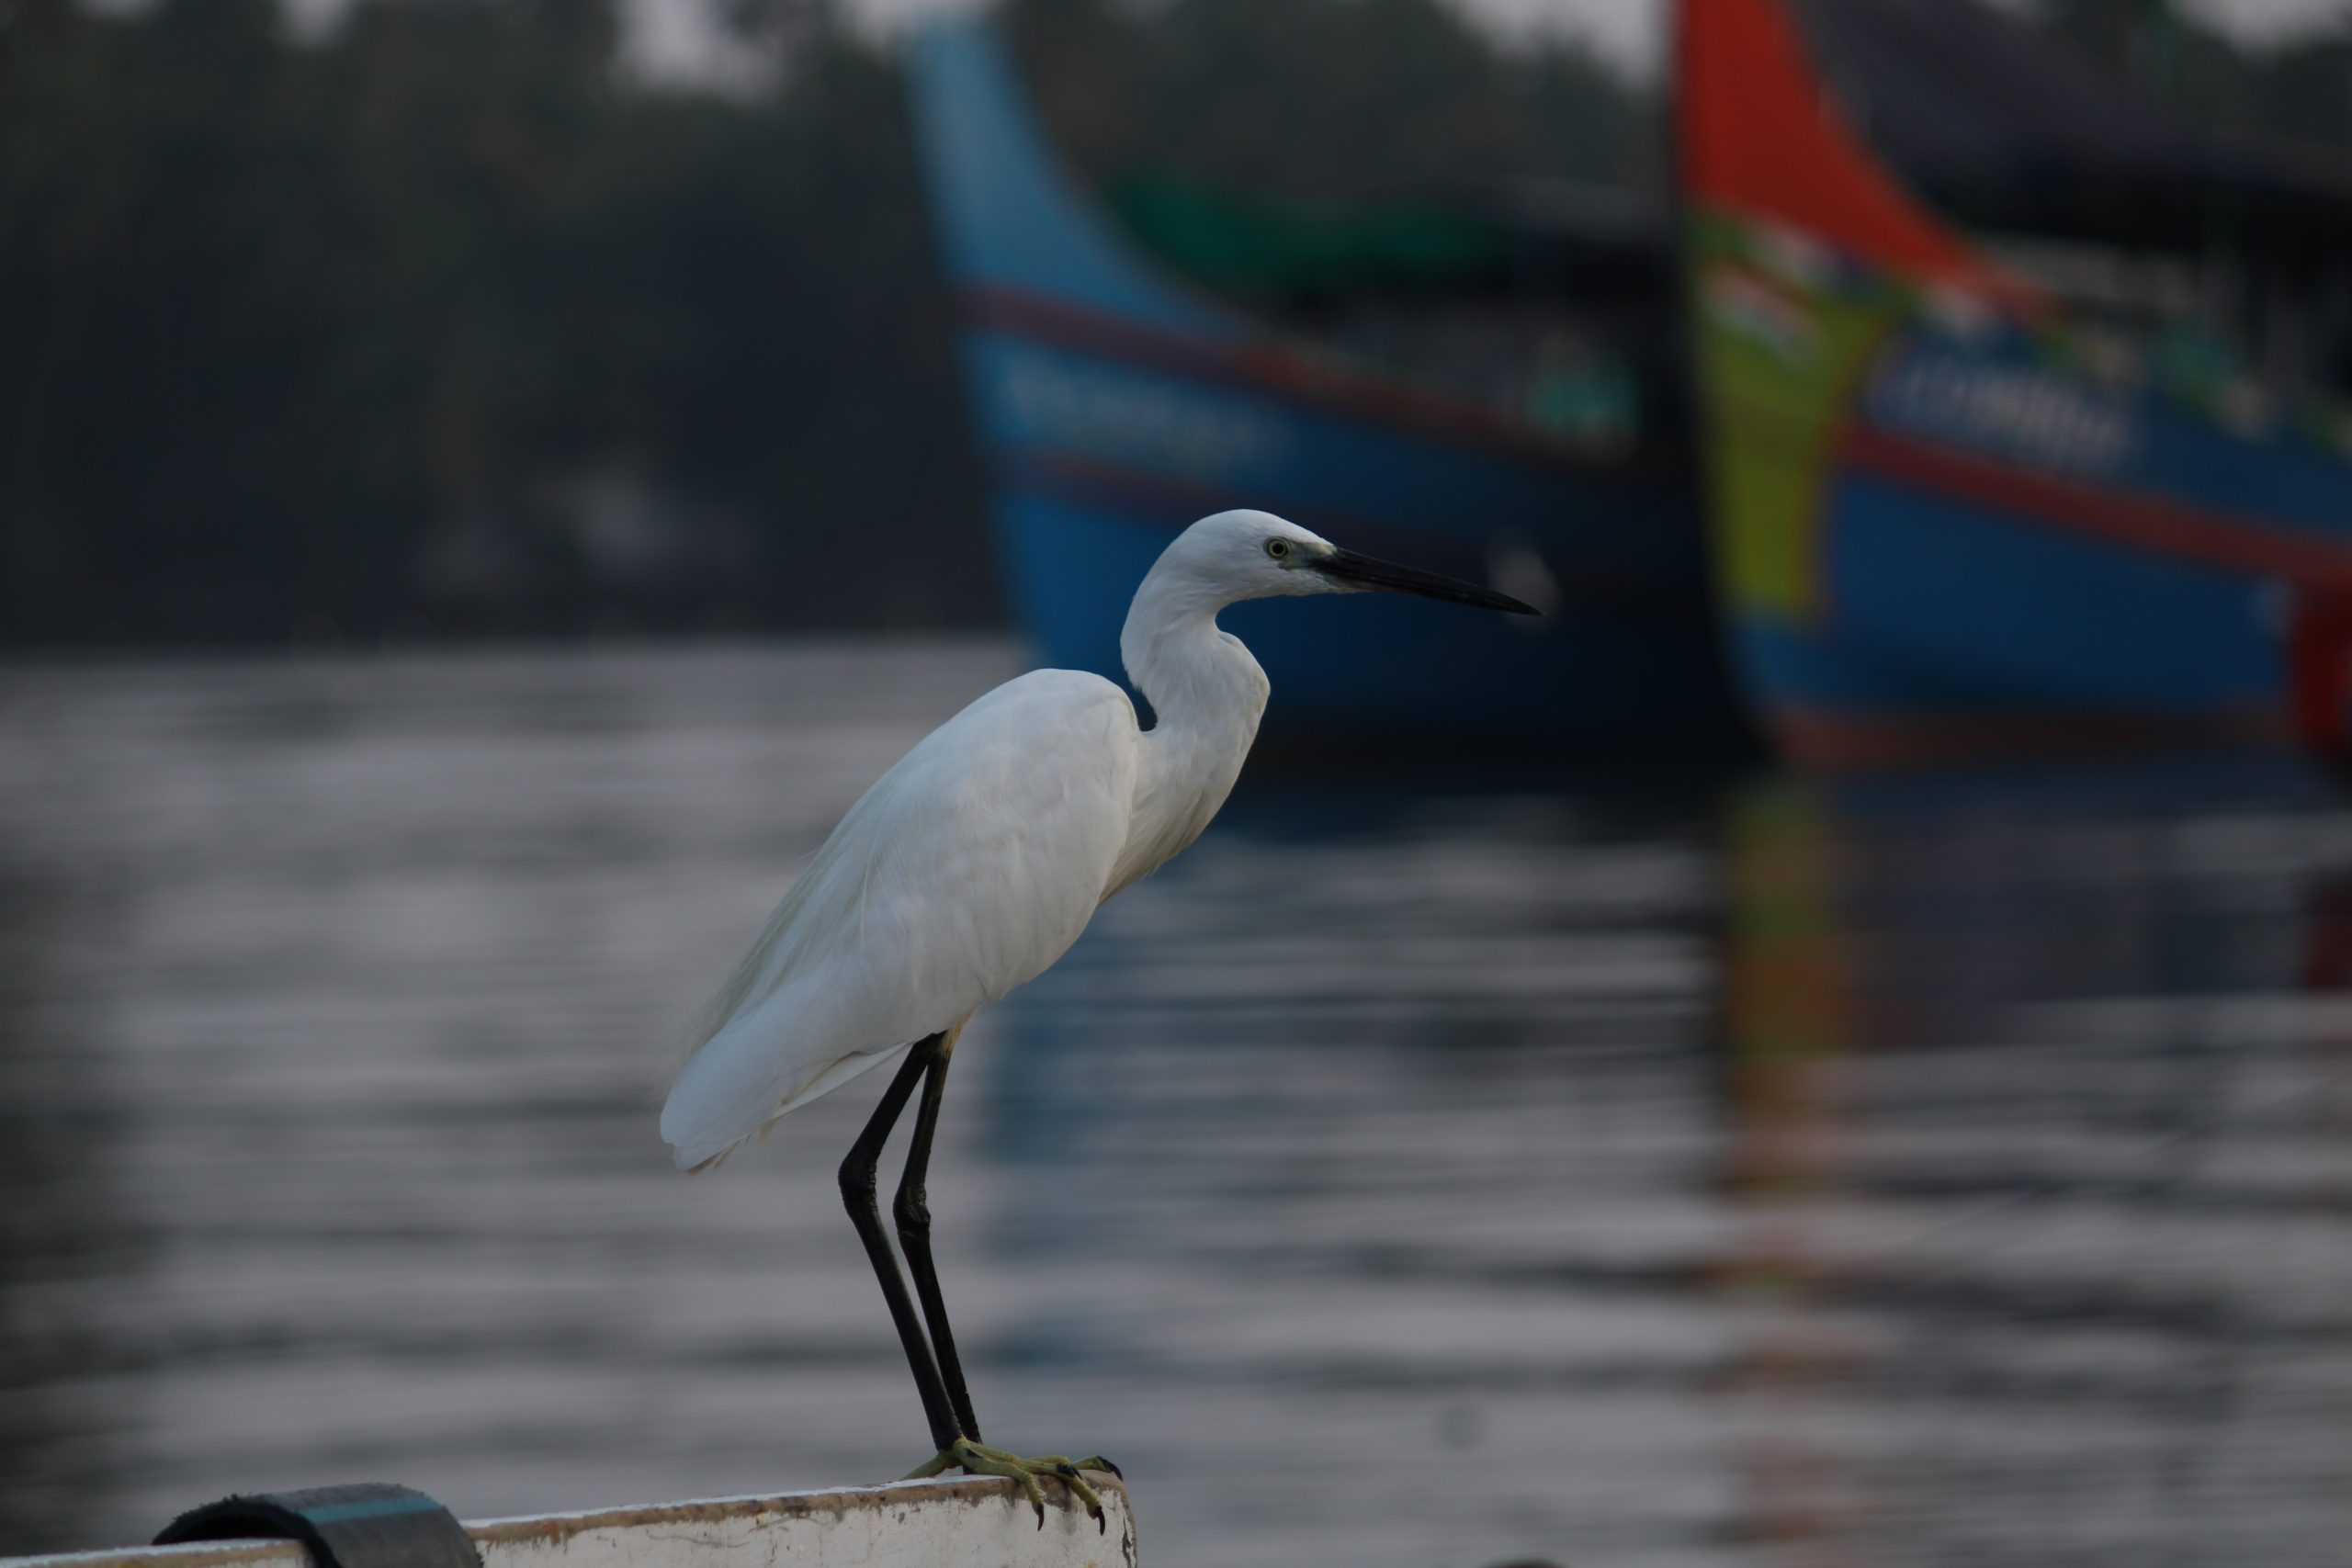 Crane bird sitting on boat in the river